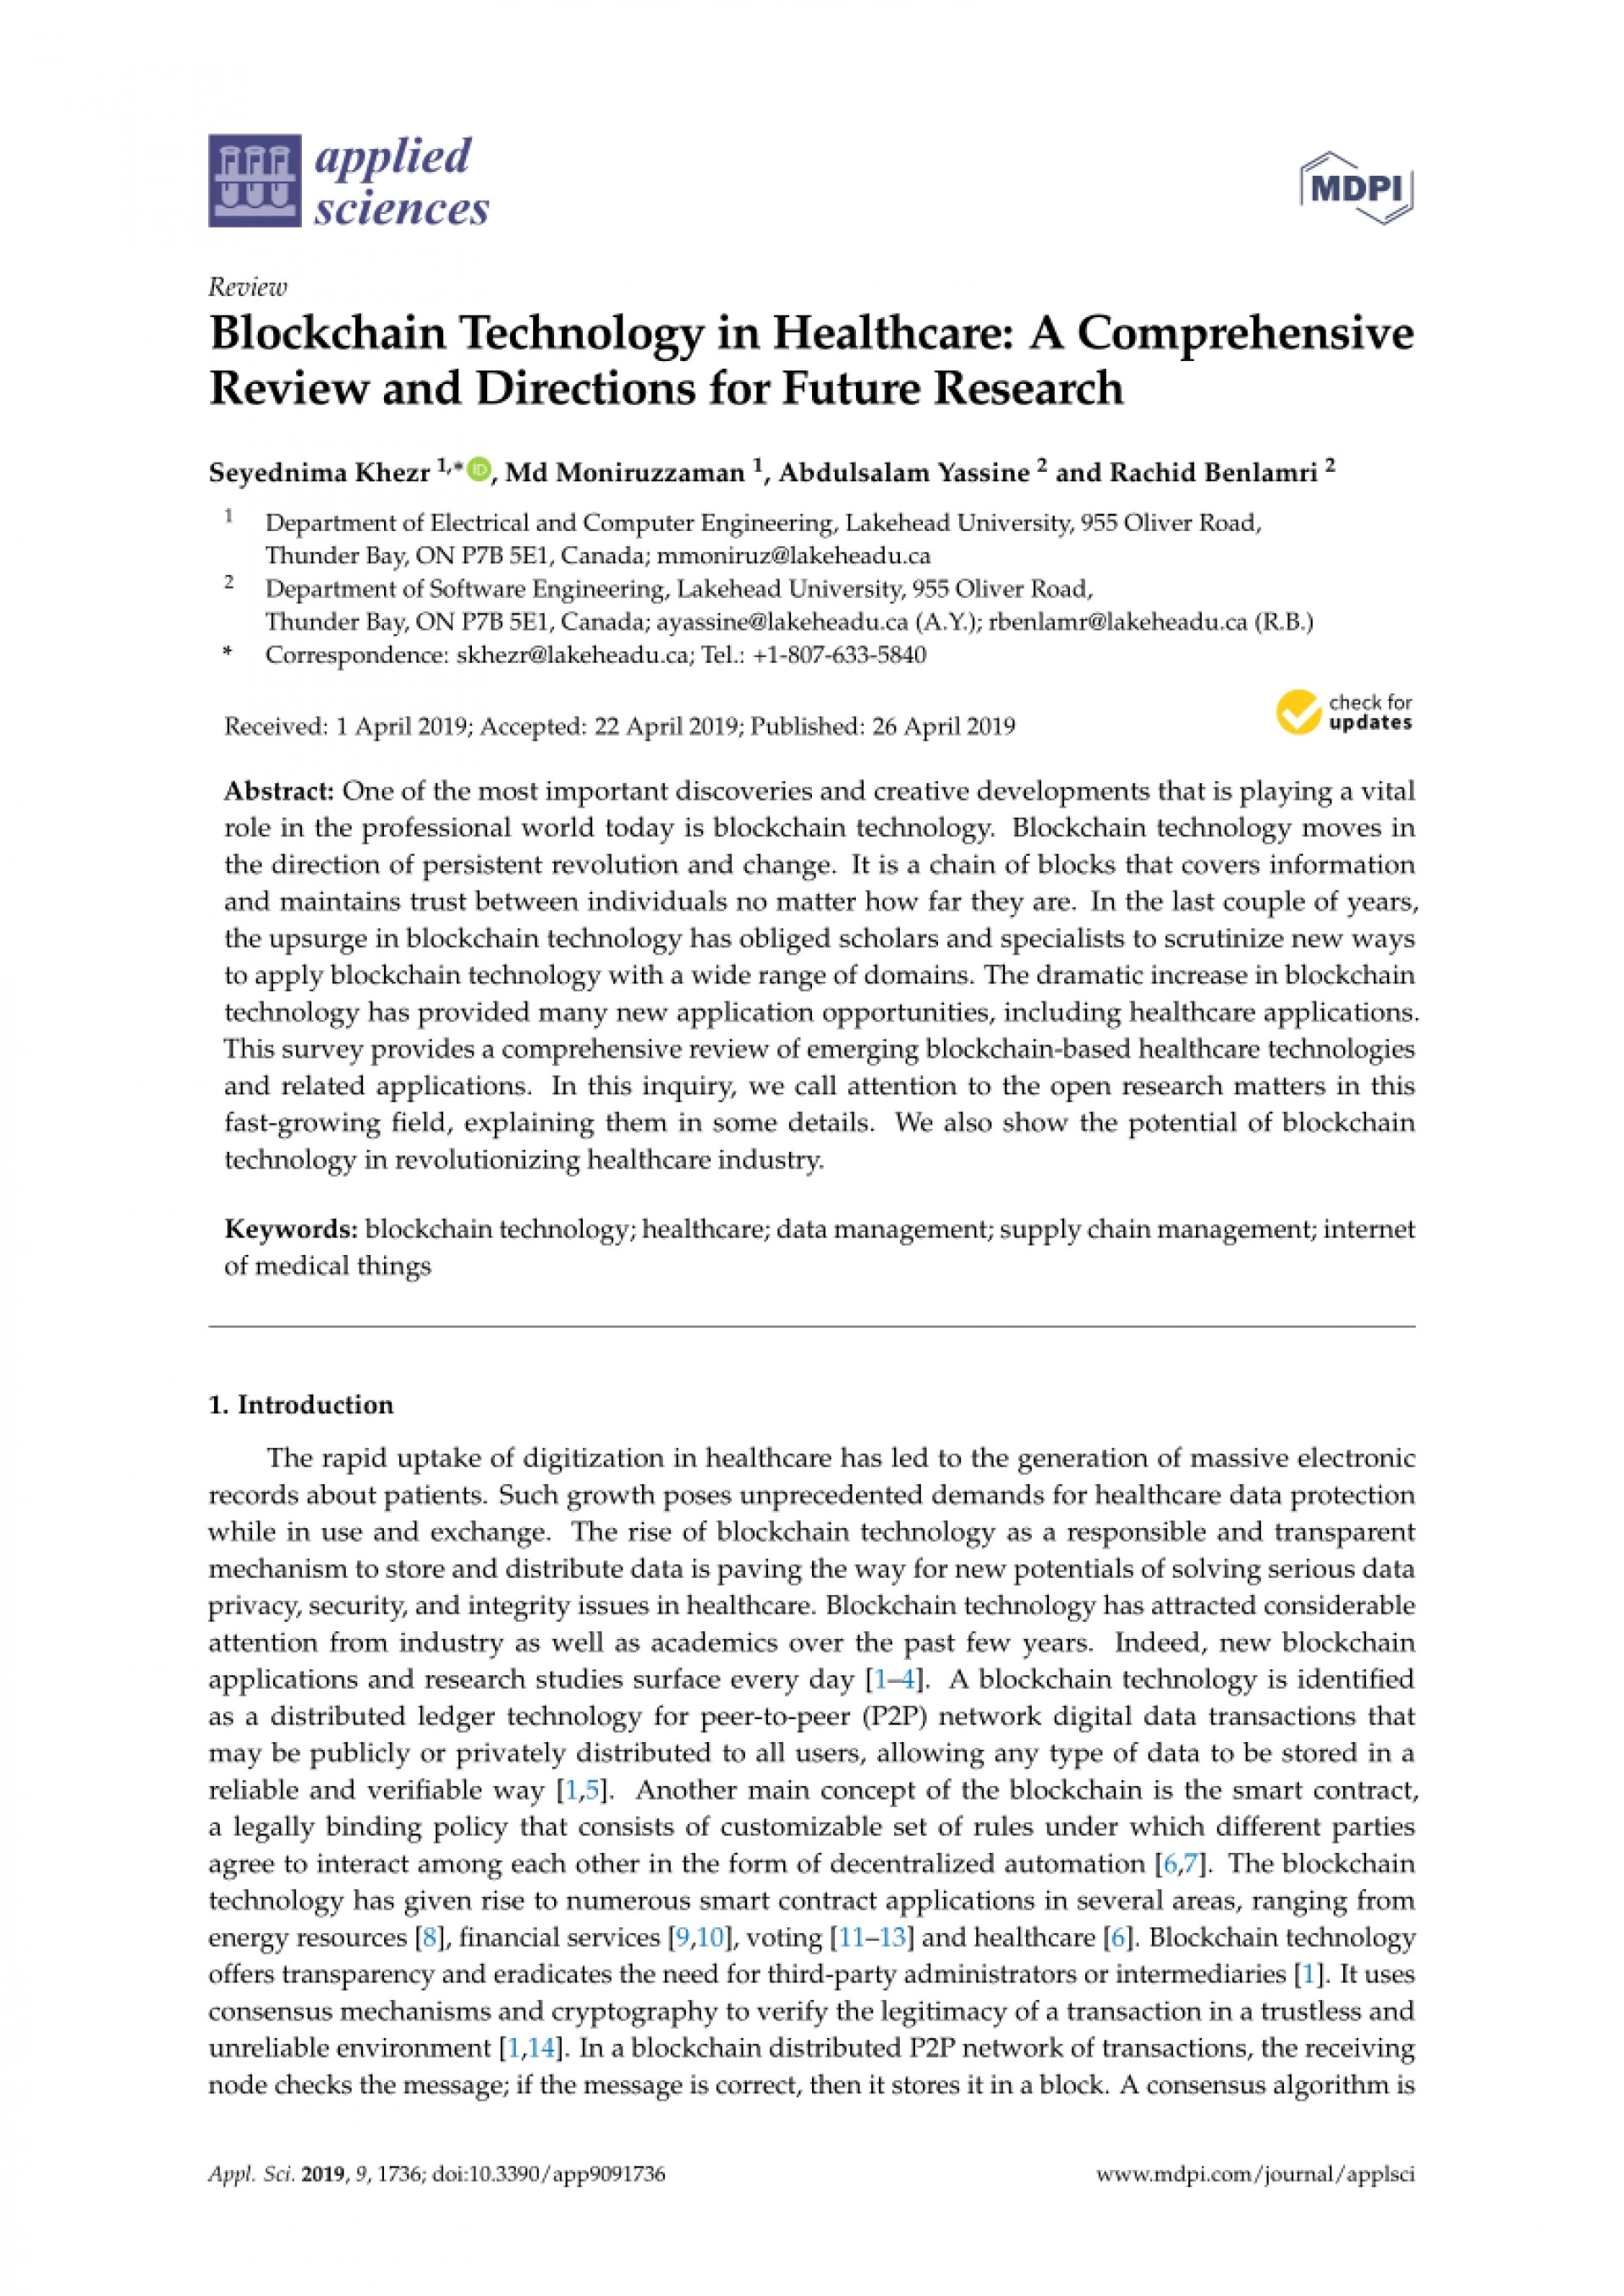 008 Research Paper Largepreview Blockchain Technology Marvelous Pdf 1920